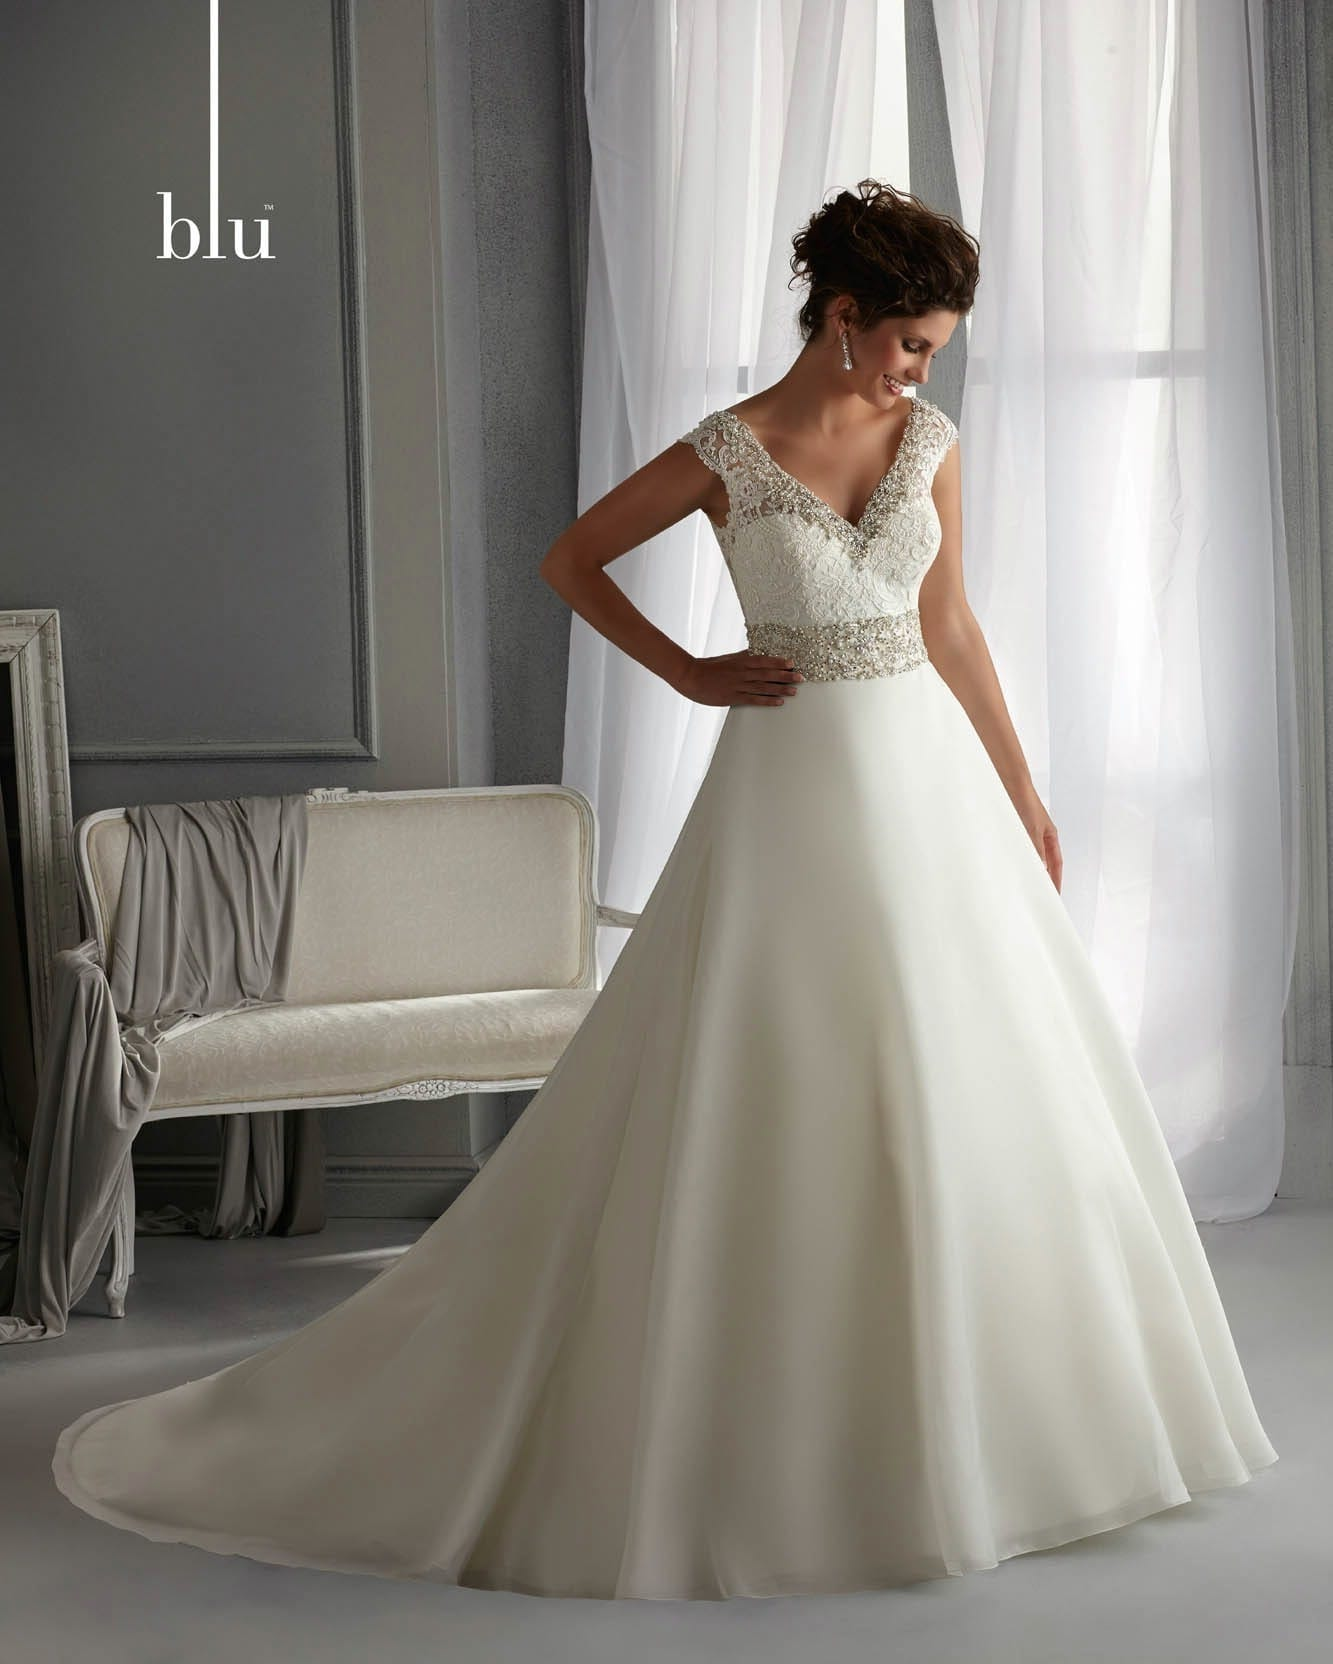 Mori Lee Wedding Gowns: Lace Back Ballgown Dress